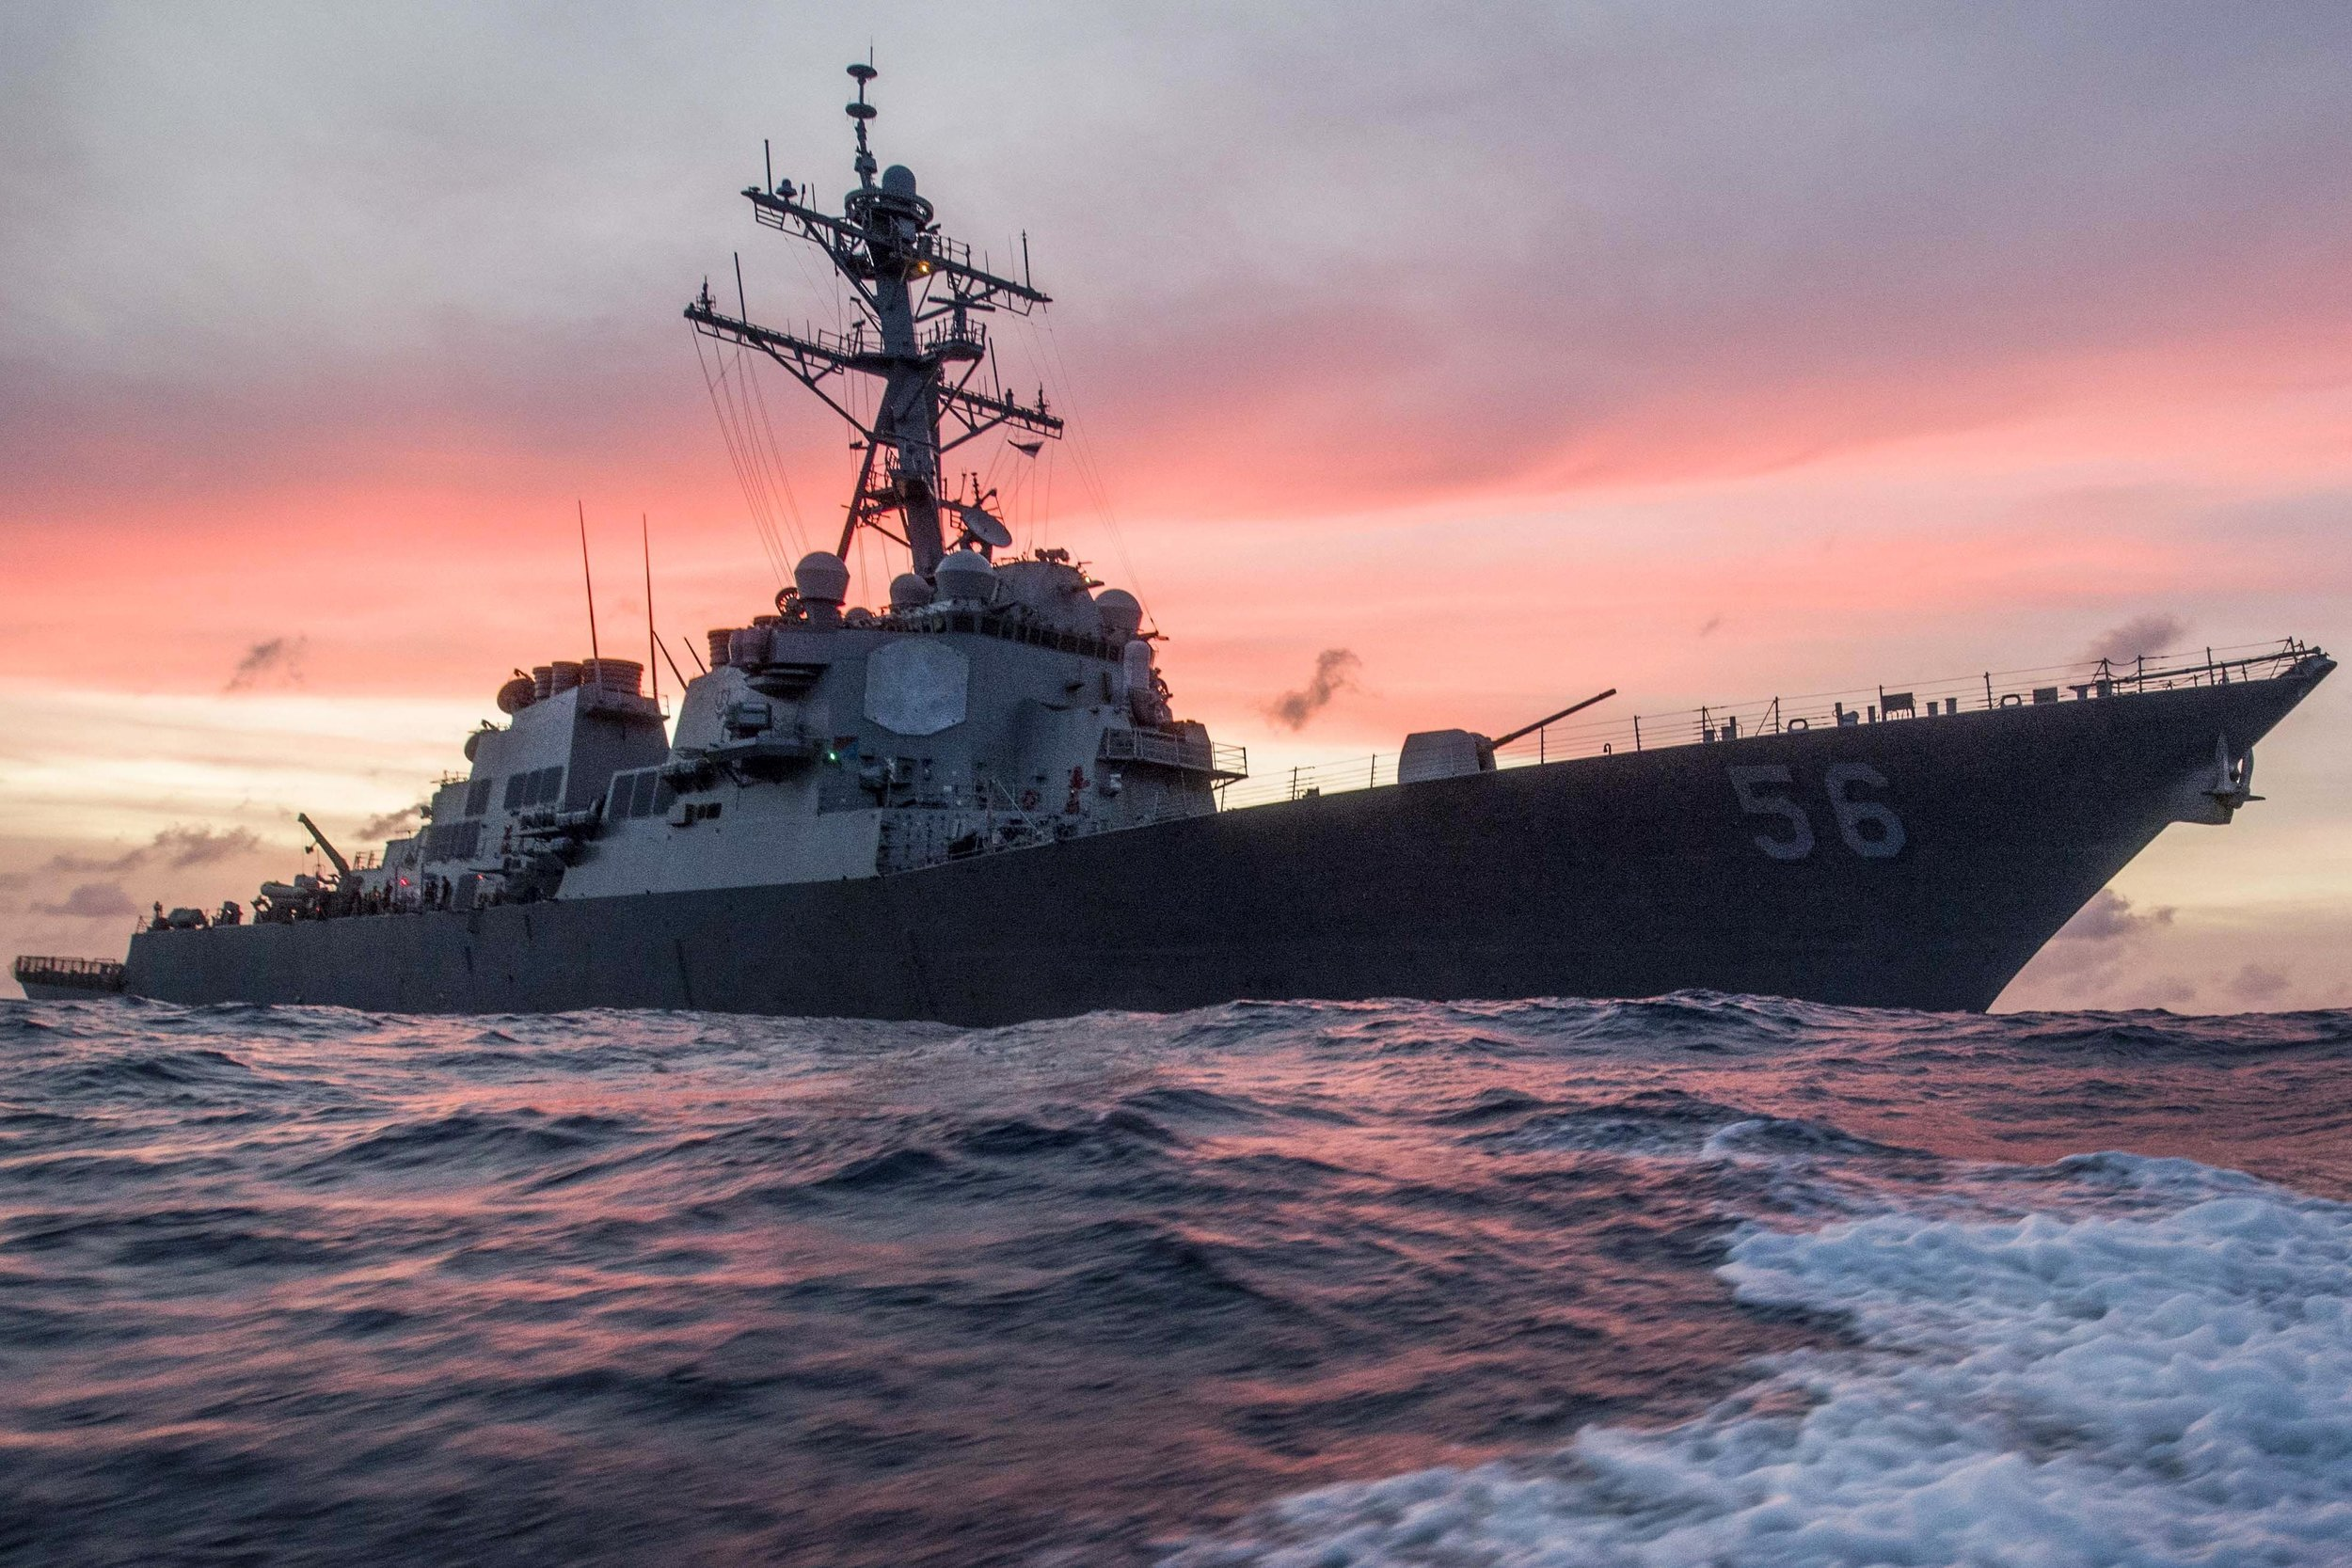 The USS John S. McCain conducts a routine patrol in the South China Sea, Jan. 22, 2017. . U.S. Navy photograph by Petty Officer 3rd Class James Vazquez.